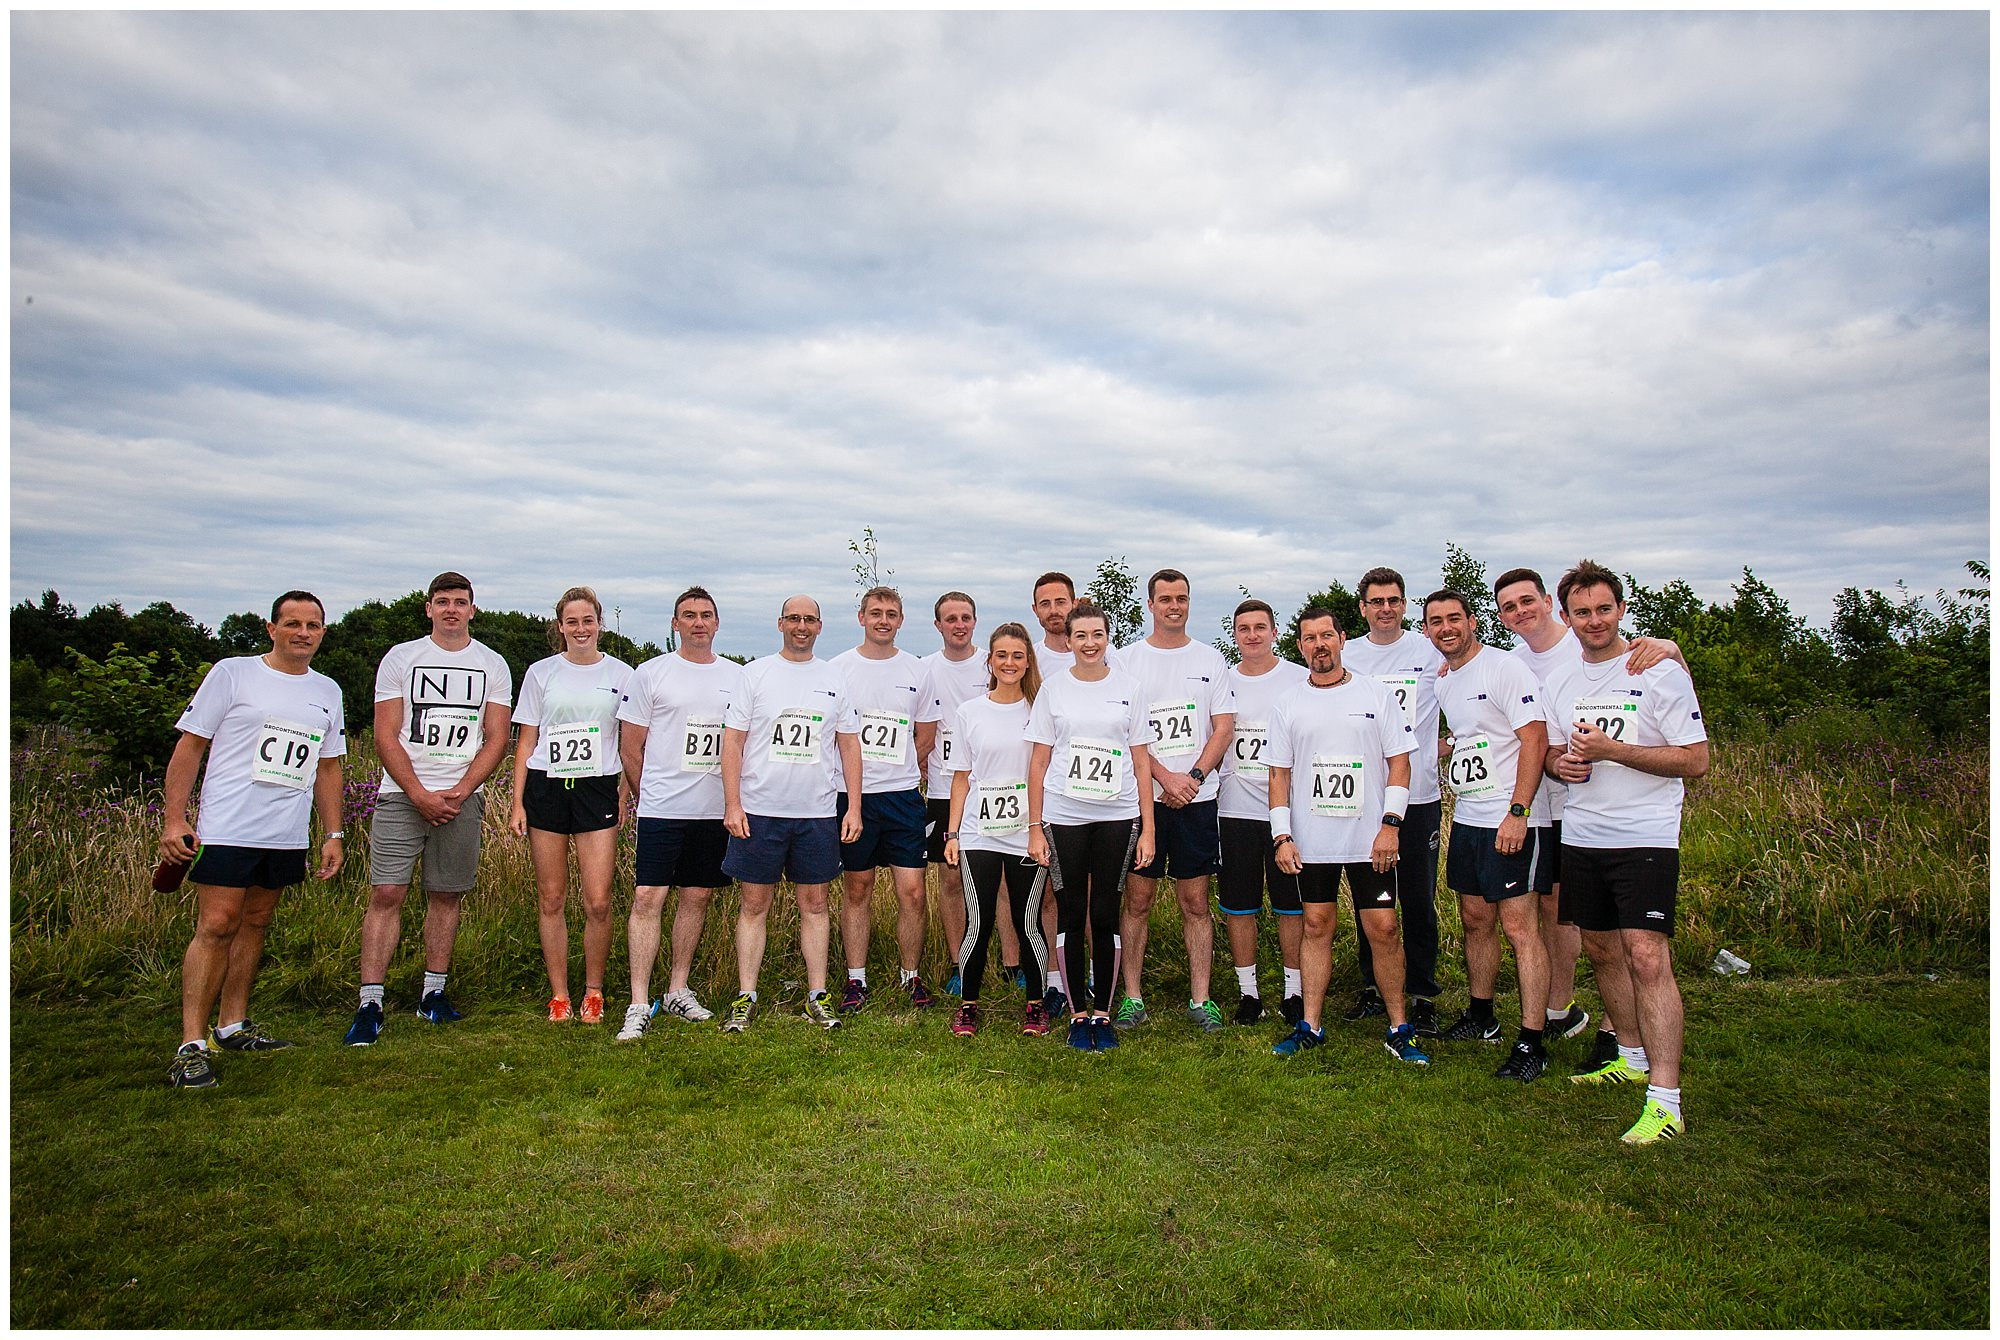 grocontinental relay 2017 team photo - charlotte giddings photography